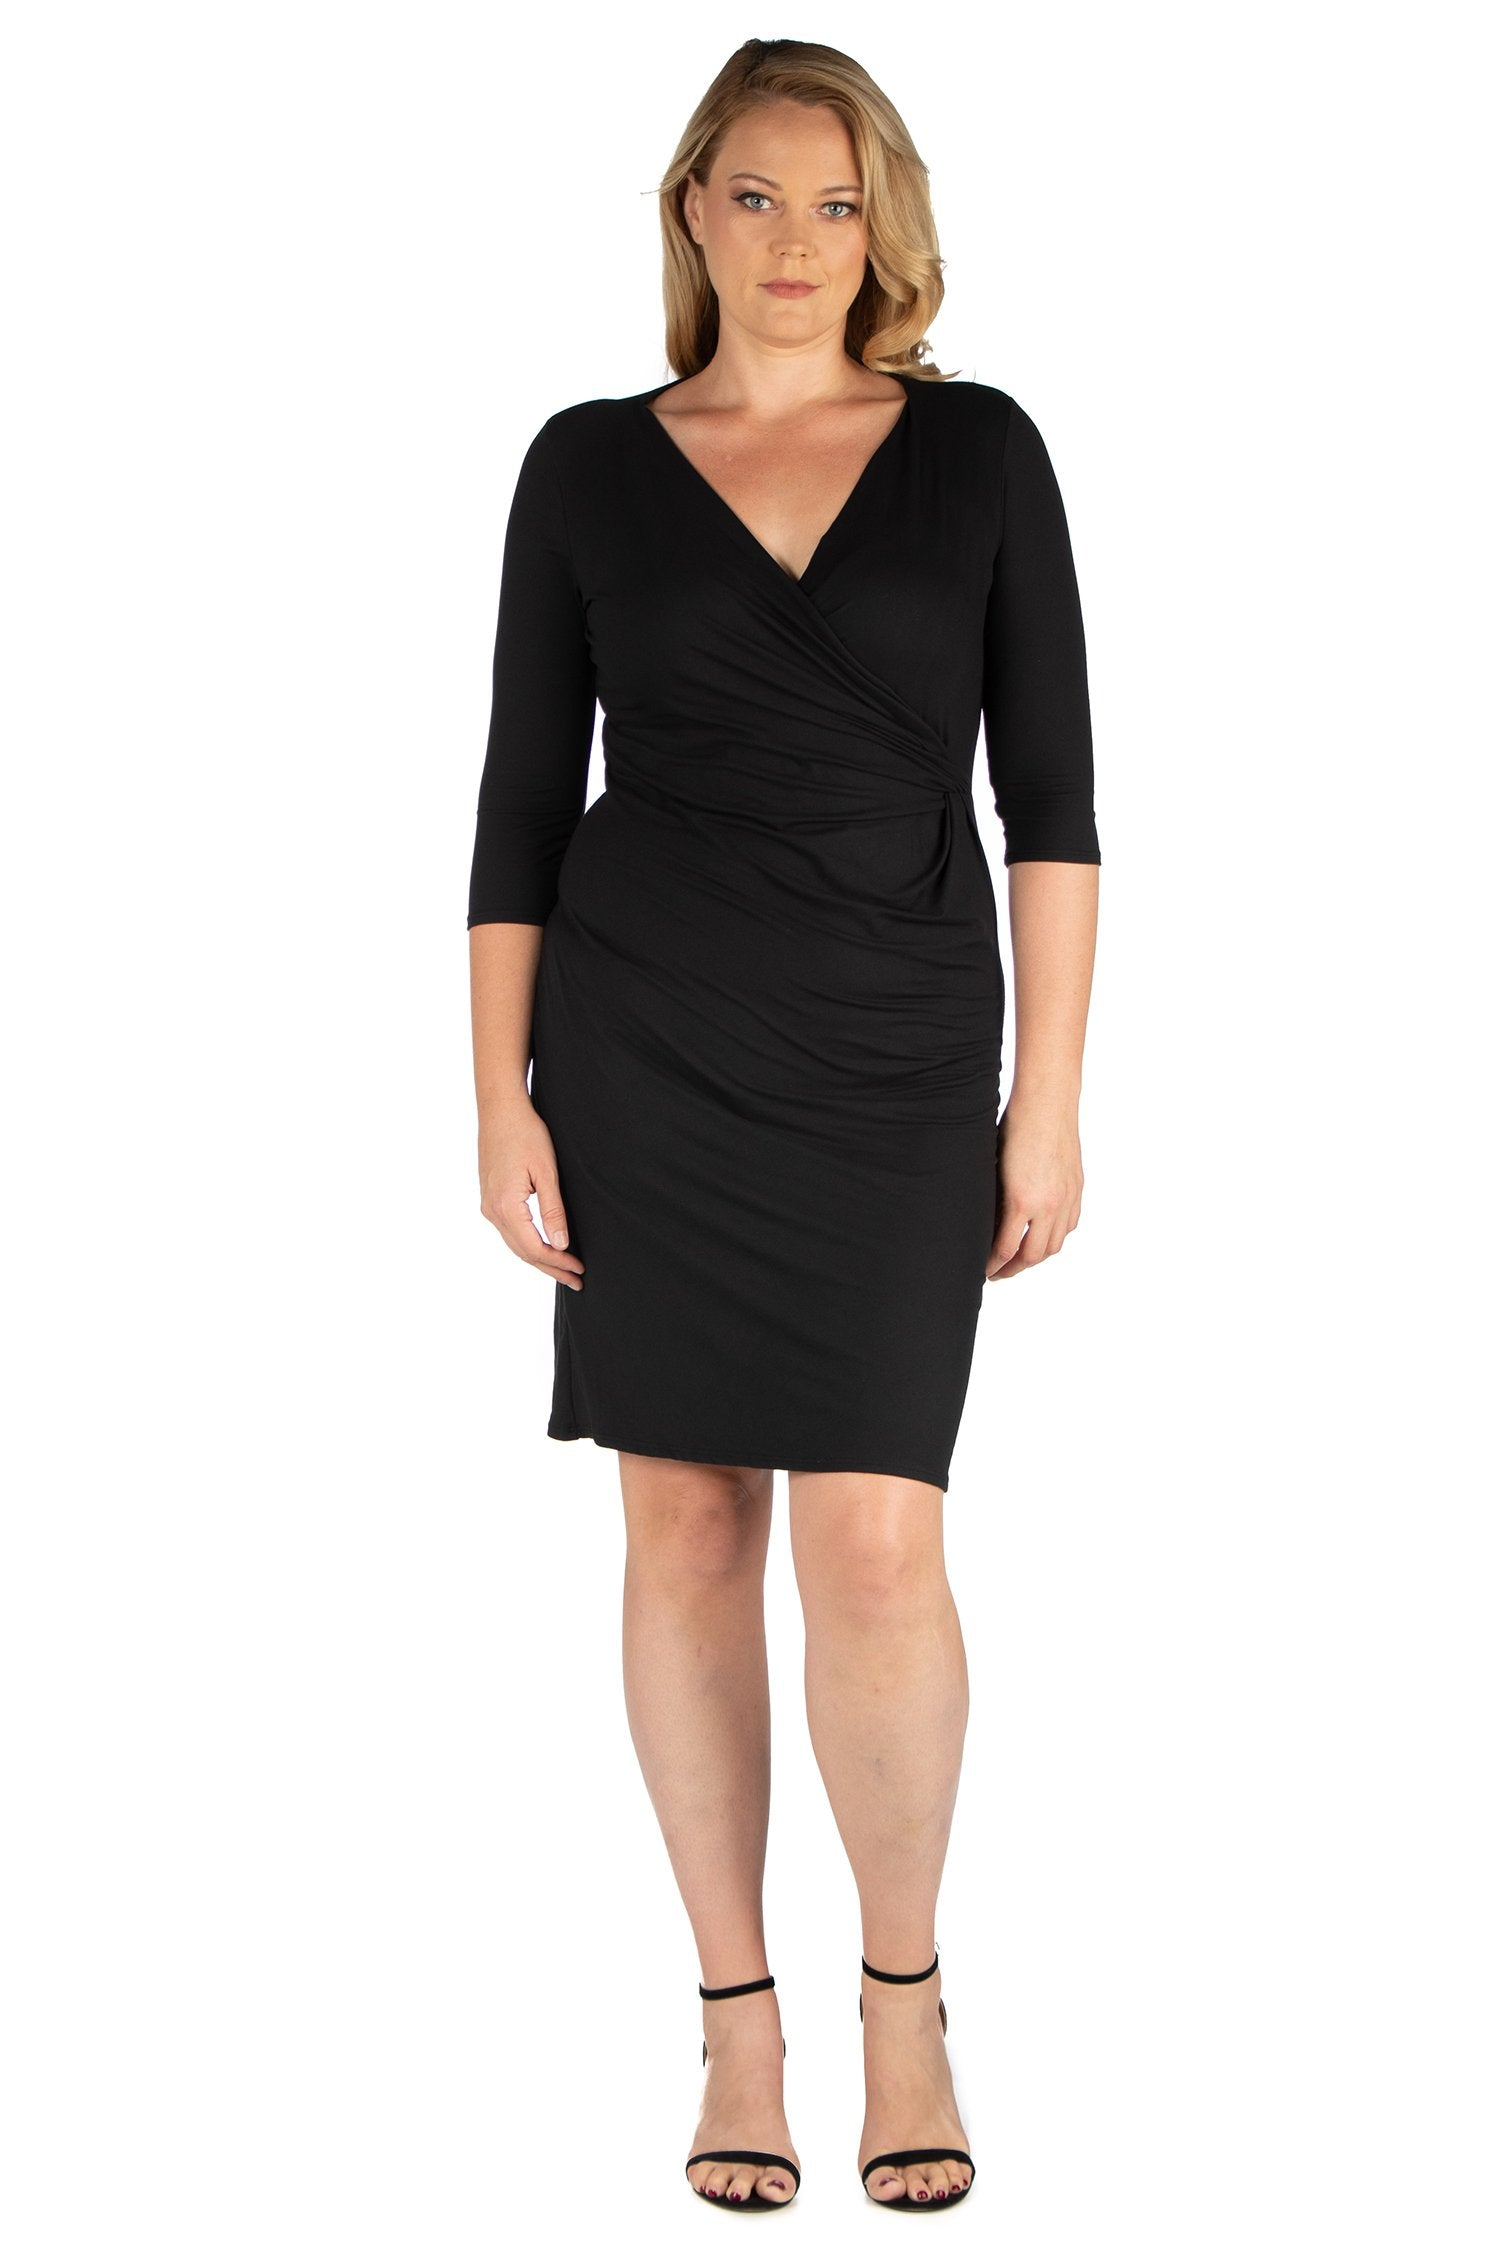 24seven Comfort Apparel Knee Length V Neck Plus Size Dress-DRESSES-24Seven Comfort Apparel-BLACK-1X-24/7 Comfort Apparel